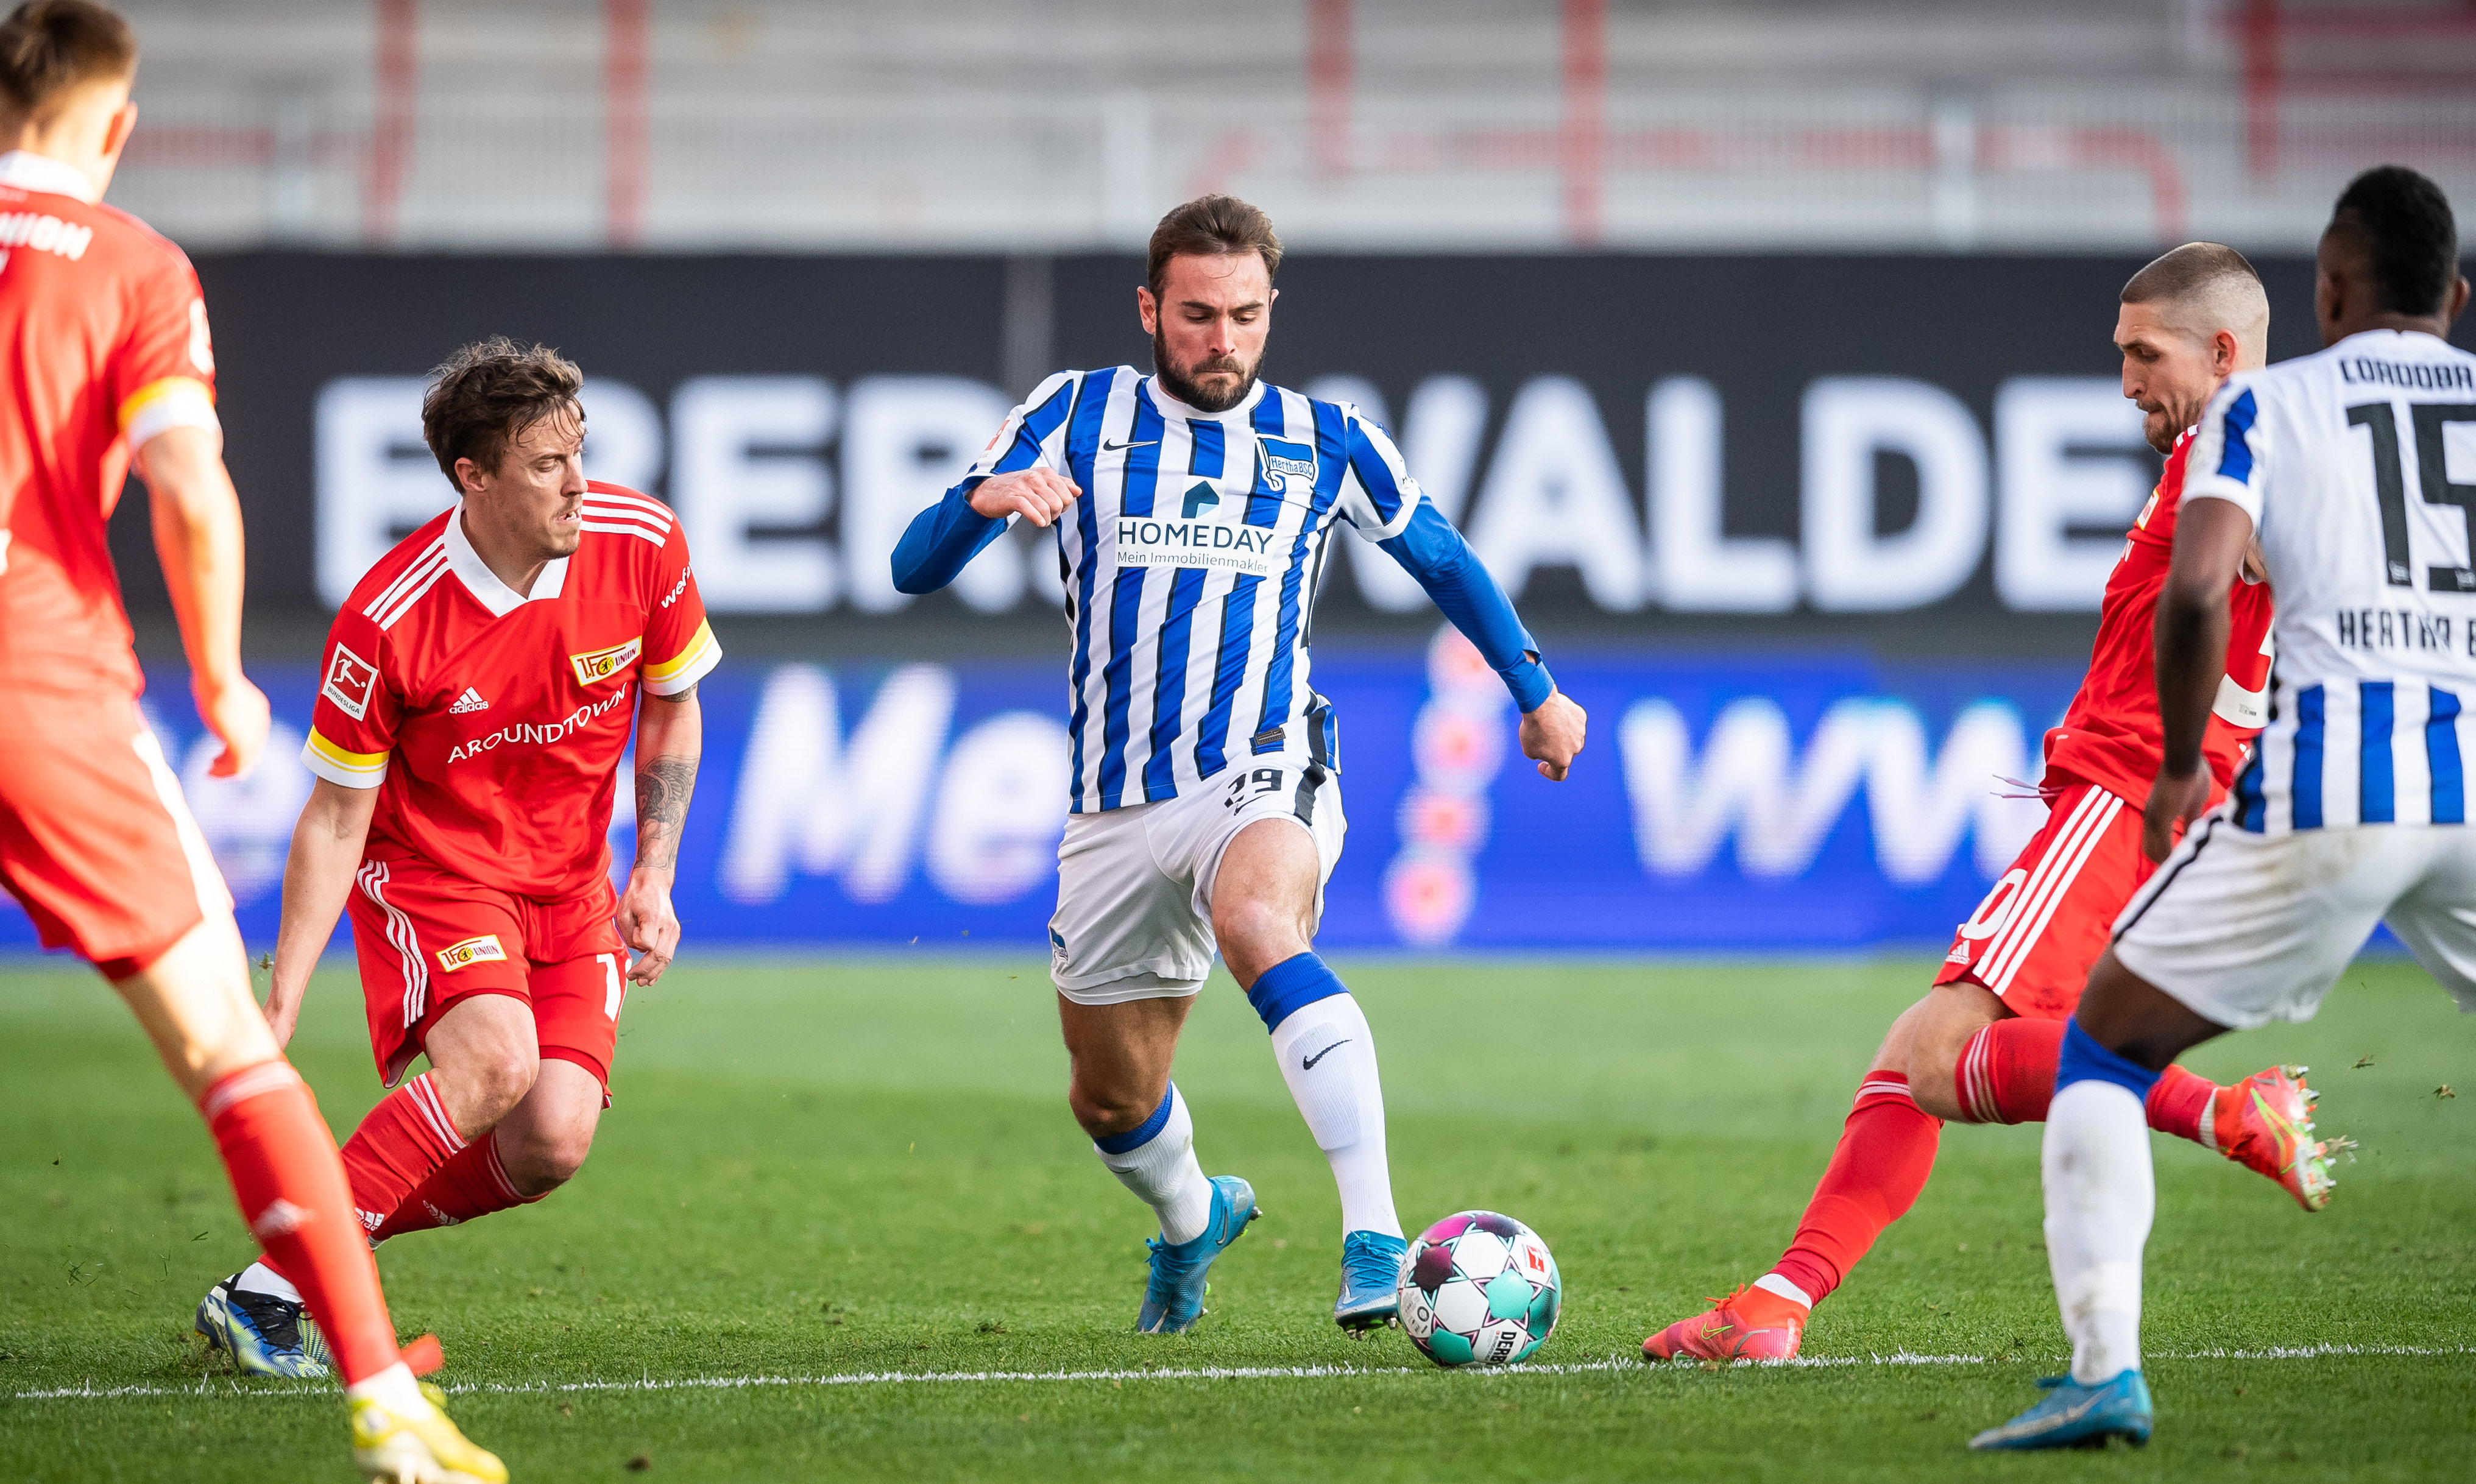 Lucas Tousart during the game against 1. FC Union